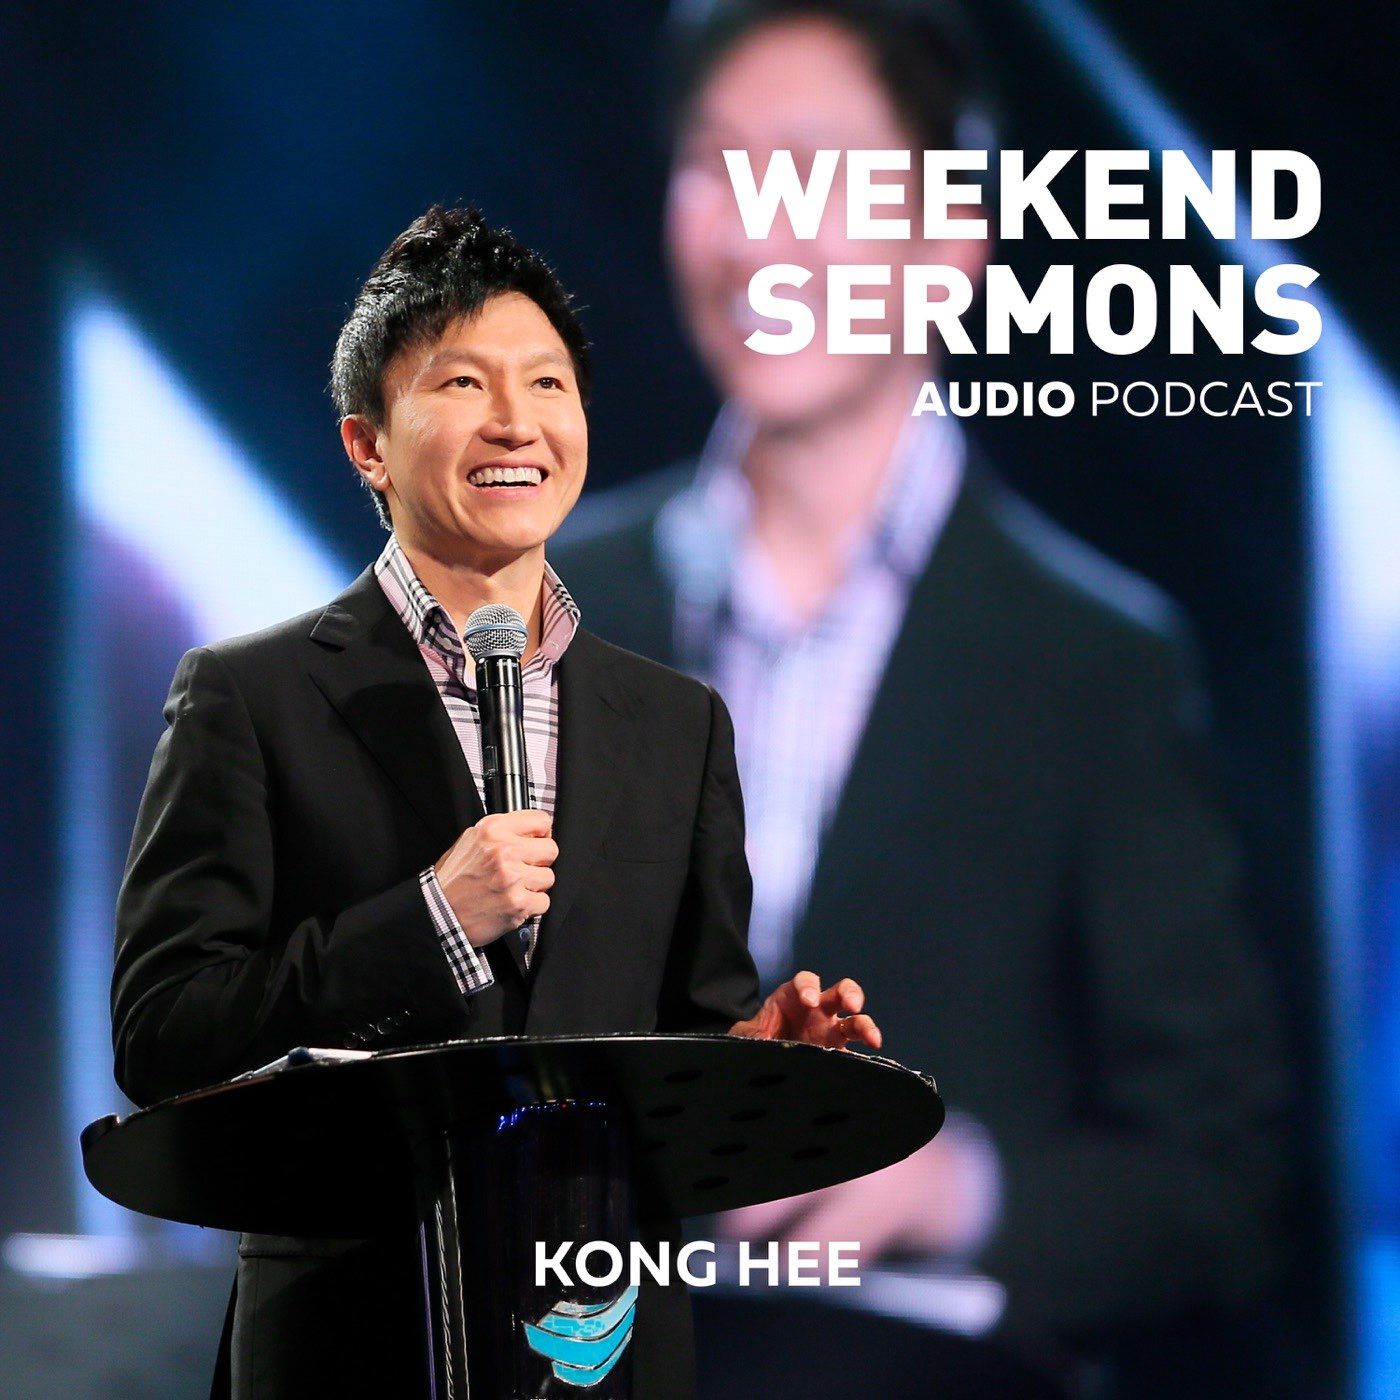 Kong Hee: The Power of Confessions (Part 2)